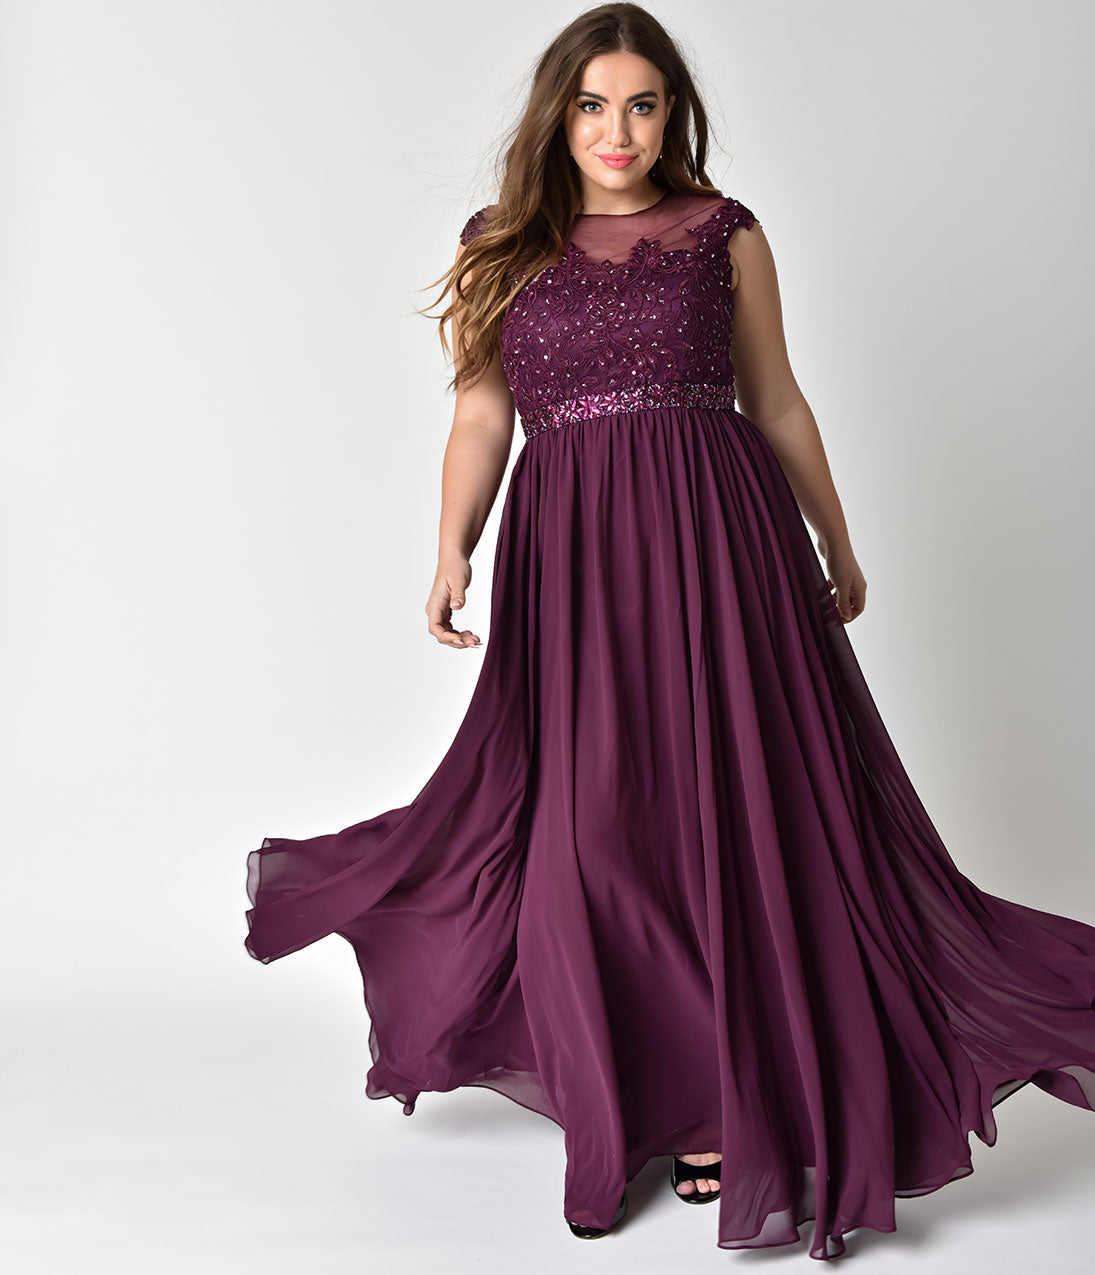 Bridesmaid eggplant dresses with sleeves advise to wear in everyday in 2019